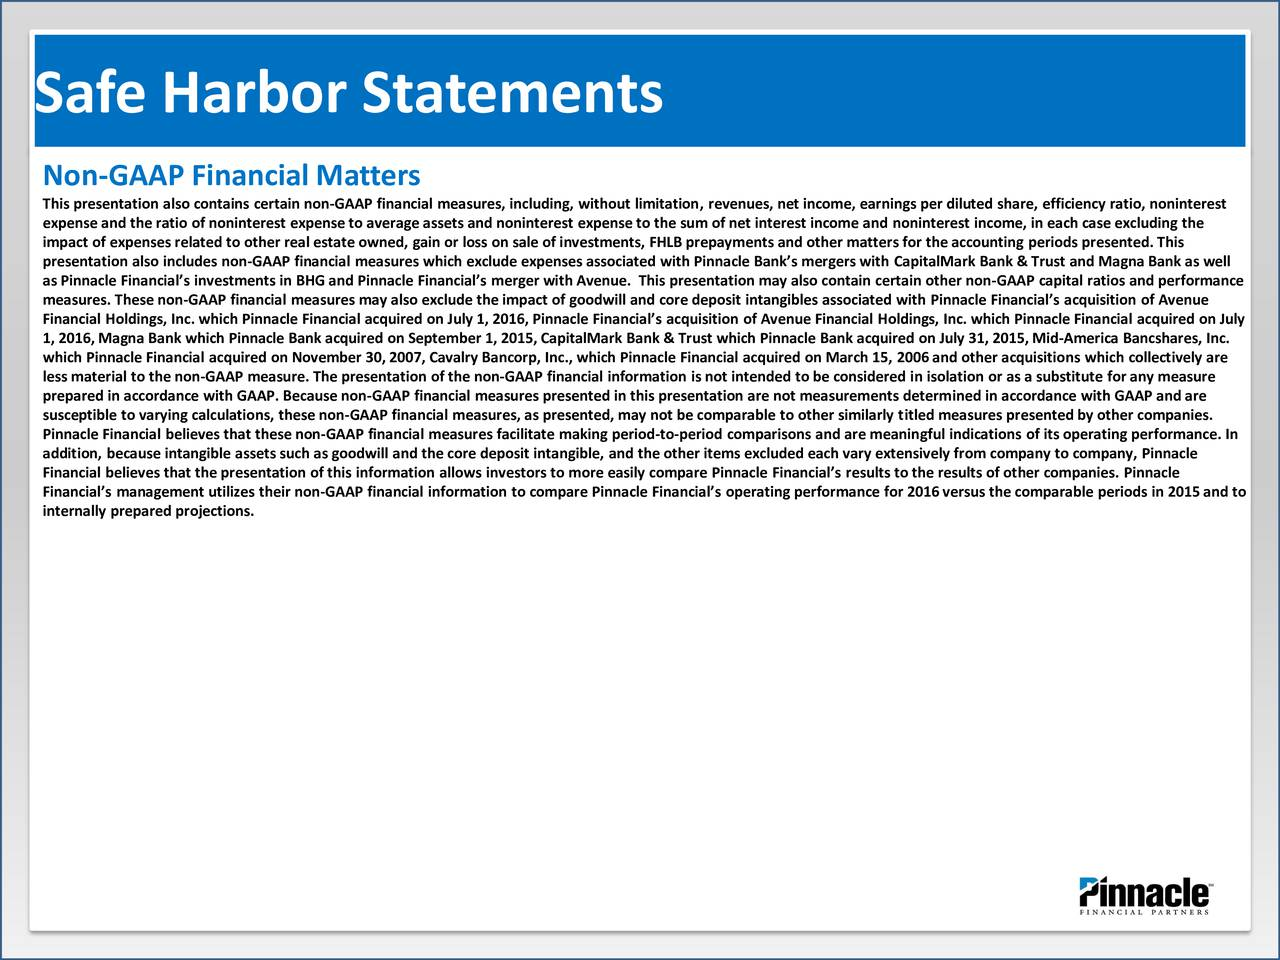 Non-GAAP Financial Matters This presentation also contains certain non-GAAP financial measures, including, without limitation, revenues, net income, earnings per diluted share, efficiency ratio, noninterest expense and the ratio of noninterest expense to average assets and noninterest expense to the sum of net interest income and noninterest income, in each case excluding the impact of expenses related to other real estate owned, gain or loss on sale of investments, FHLB prepayments and other matters for the accounting periods presented. This presentation also includes non-GAAP financial measures which exclude expenses associated with Pinnacle Banks mergers with CapitalMark Bank & Trust and Magna Bank as well as Pinnacle Financials investments in BHG and Pinnacle Financials merger with Avenue. This presentation may also contain certain other non-GAAP capital ratios and performance measures. These non-GAAP financial measures may also exclude the impact of goodwill and core deposit intangibles associated with Pinnacle Financials acquisition of Avenue Financial Holdings, Inc. which Pinnacle Financial acquired on July 1, 2016, Pinnacle Financials acquisition of Avenue Financial Holdings, Inc. which Pinnacle Financial acquired on July which Pinnacle Financial acquired on November 30, 2007, Cavalry Bancorp, Inc., which Pinnacle Financial acquired on March 15, 2006and other acquisitions which collectively are less material to the non-GAAP measure. The presentation of the non-GAAP financial information is not intended to be considered in isolation or as a substitute for any measure prepared in accordance with GAAP. Because non-GAAP financial measures presented in this presentation are not measurements determined in accordance with GAAP and are susceptible to varying calculations, these non-GAAP financial measures, as presented, may not be comparable to other similarly titled measures presented by other companies. Pinnacle Financial believes that these non-GAAP financial mea